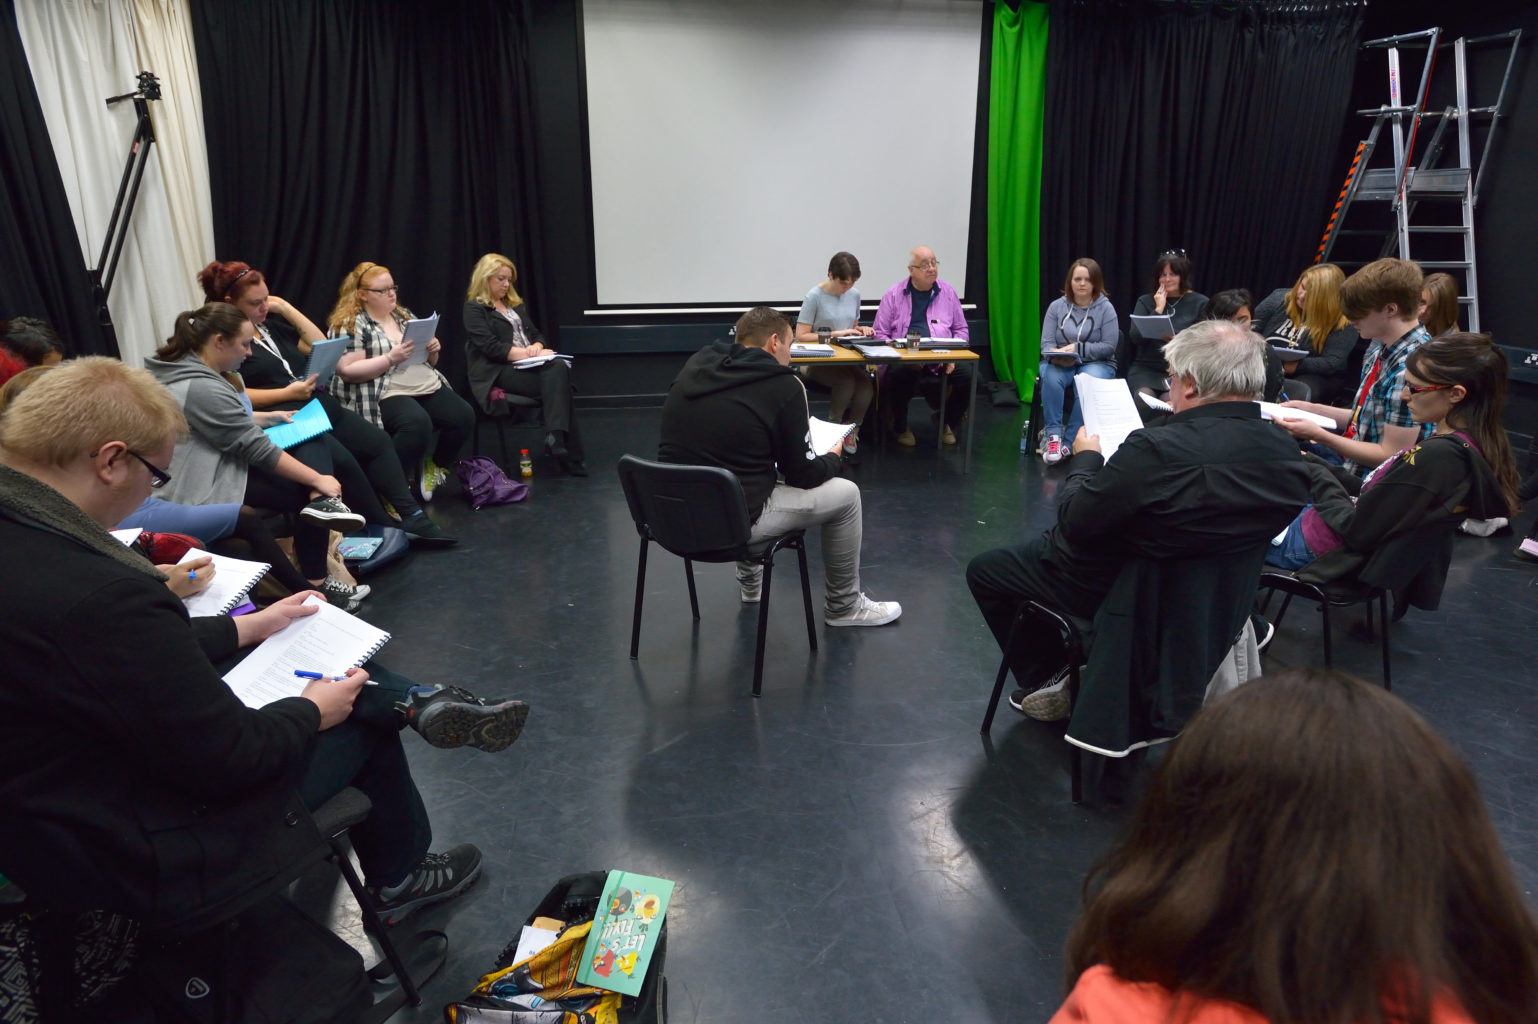 Post Graduate Certificate in Education 14+ (Art, Creative Practice and Performance)